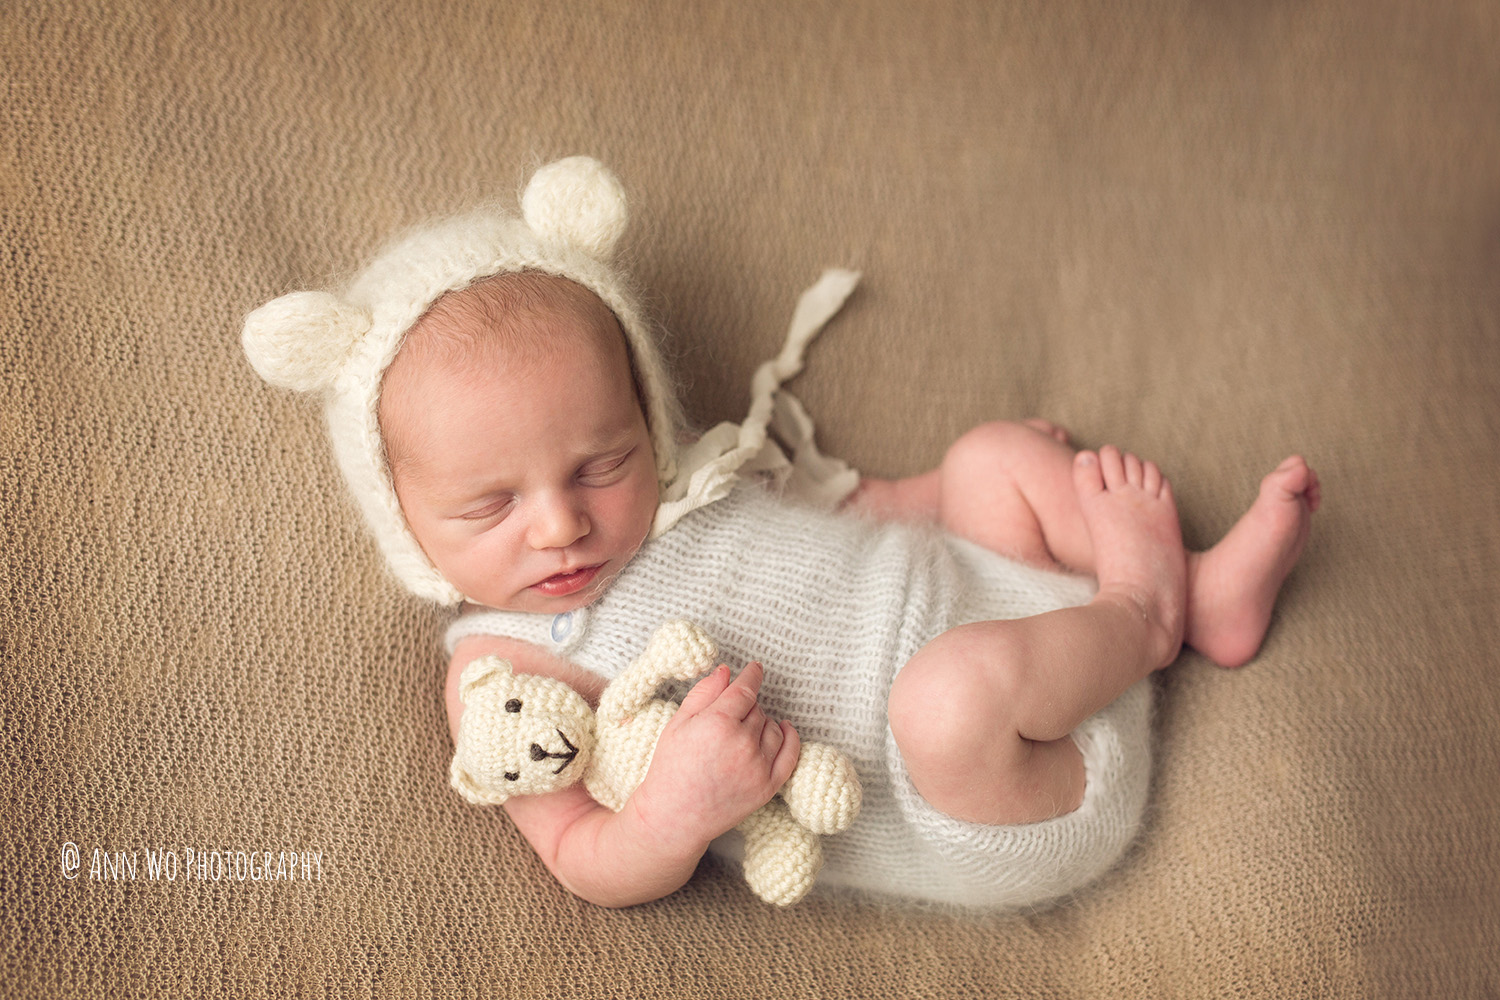 newborn baby romper and teddy bear Ann Wo photography  in London